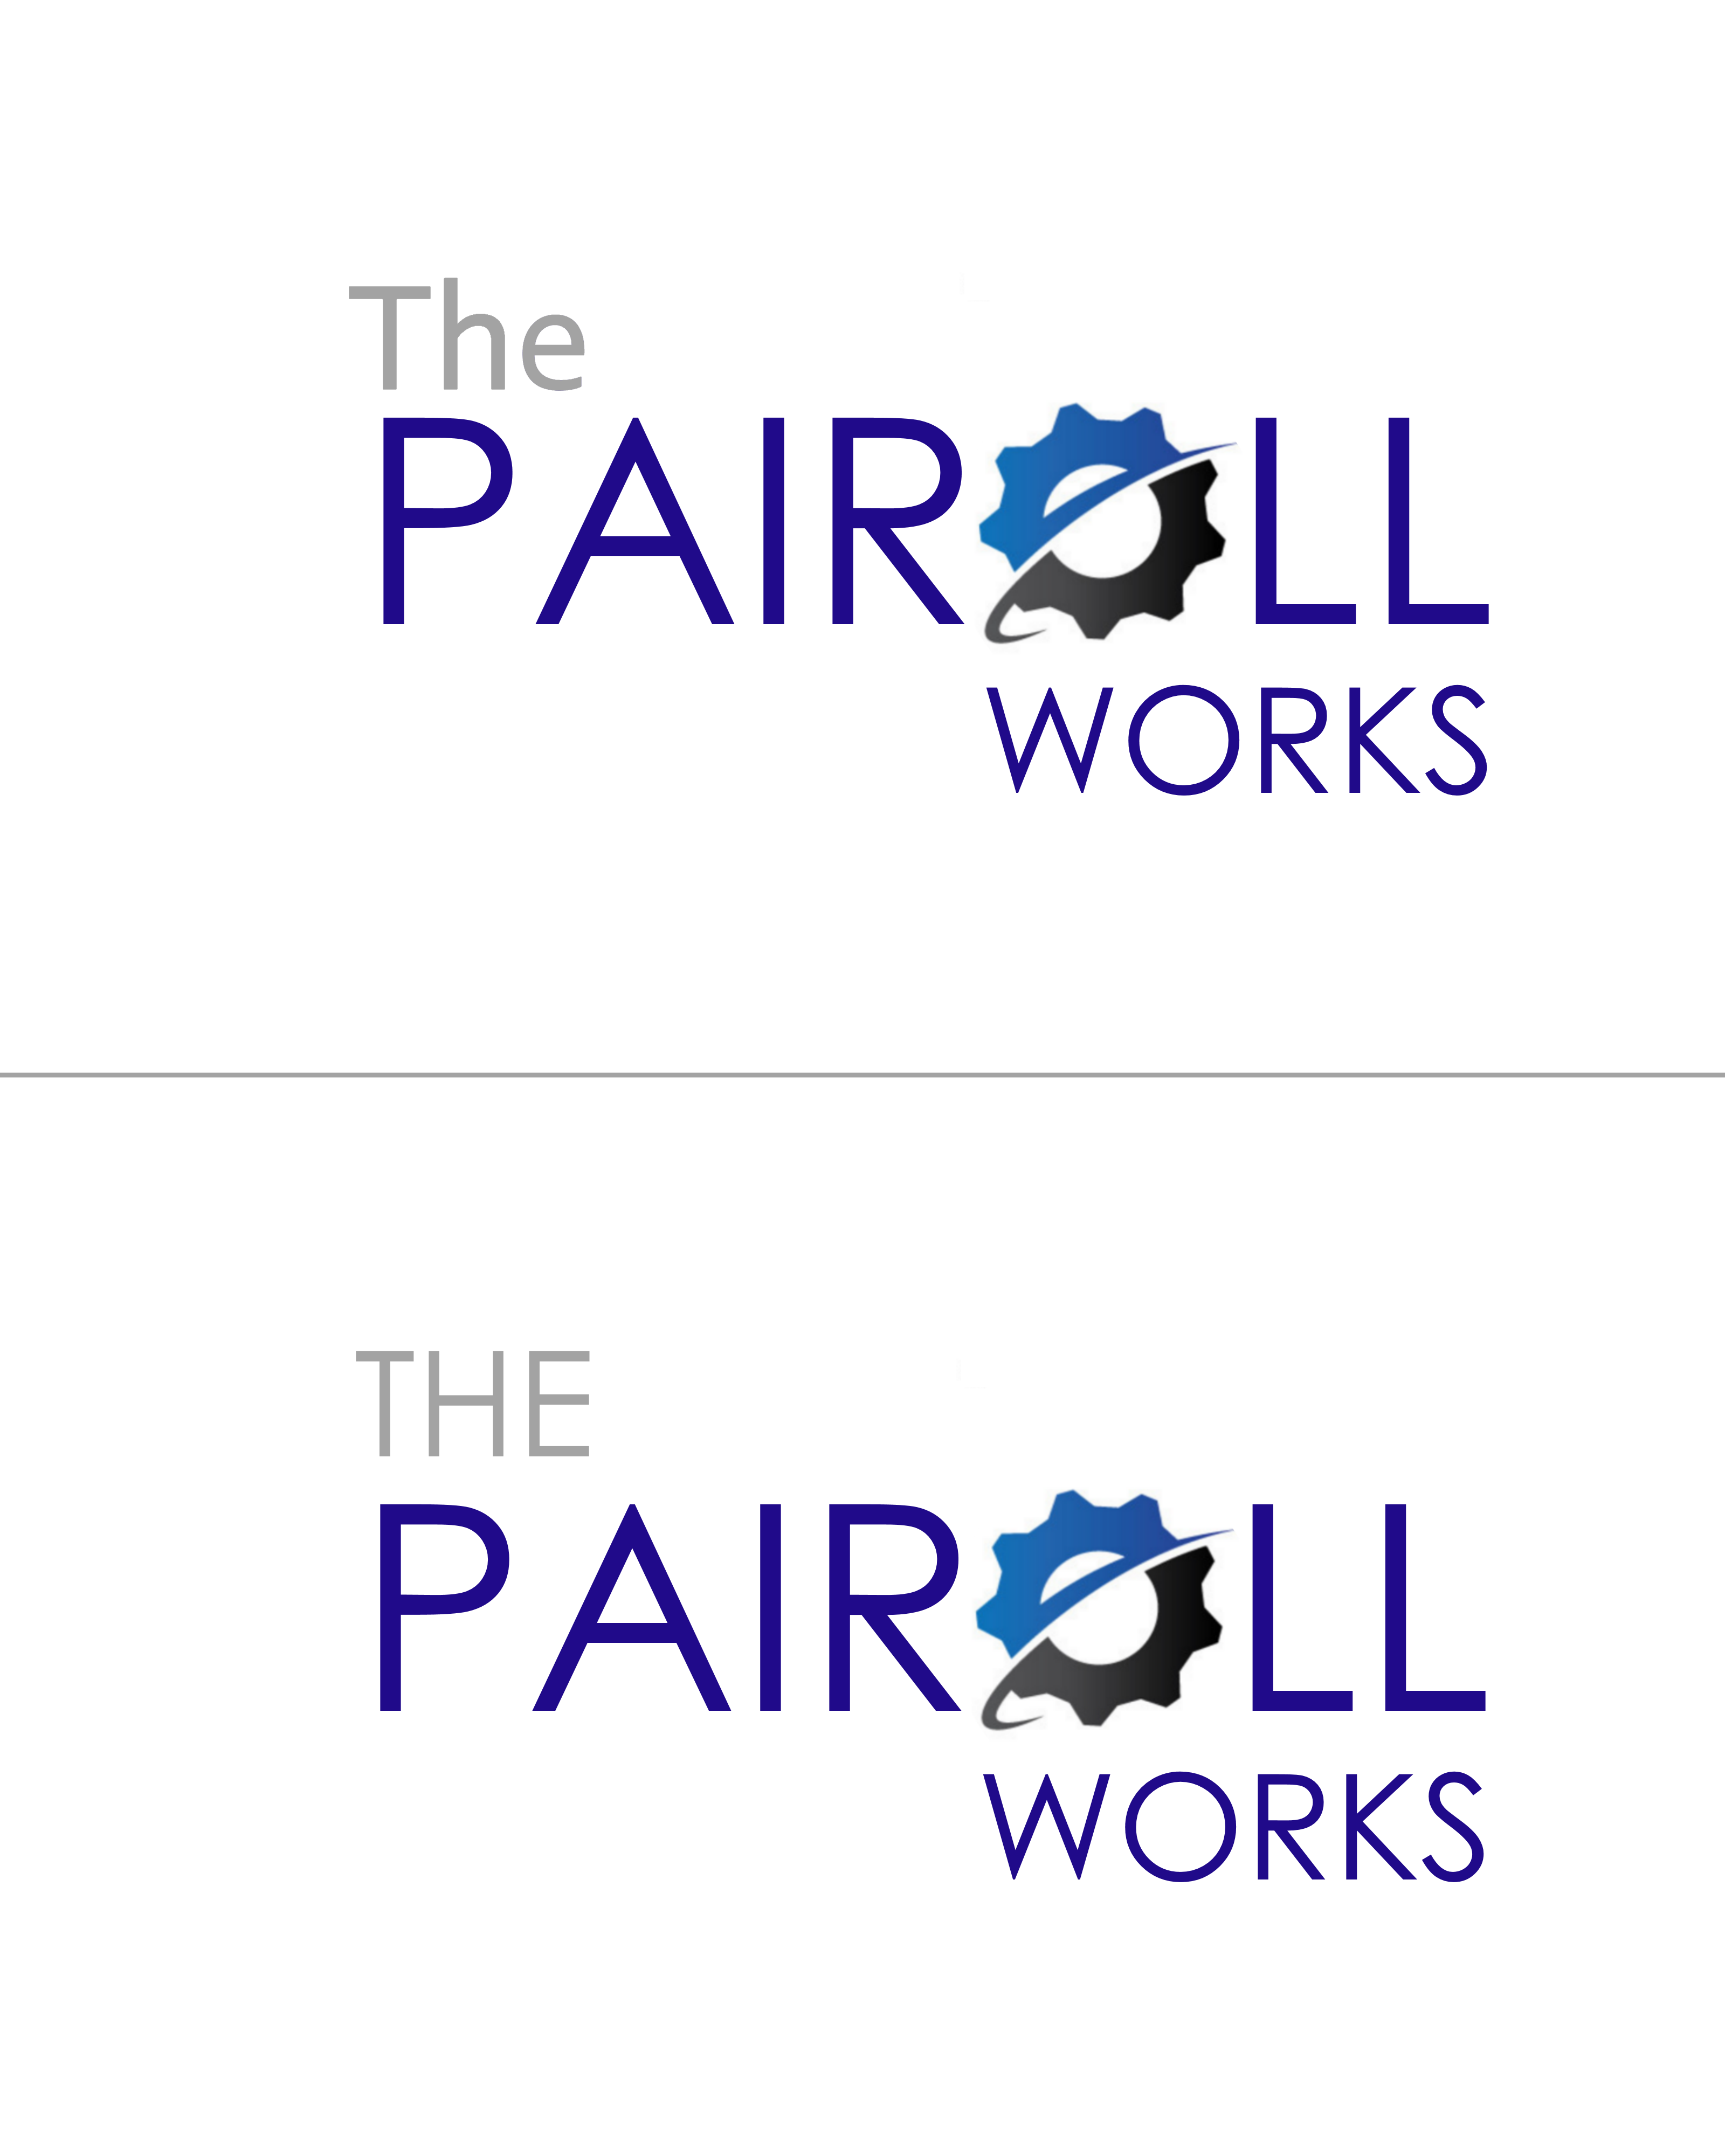 Logo Design by Roberto Bassi - Entry No. 136 in the Logo Design Contest Captivating Logo Design for The Payroll Works.